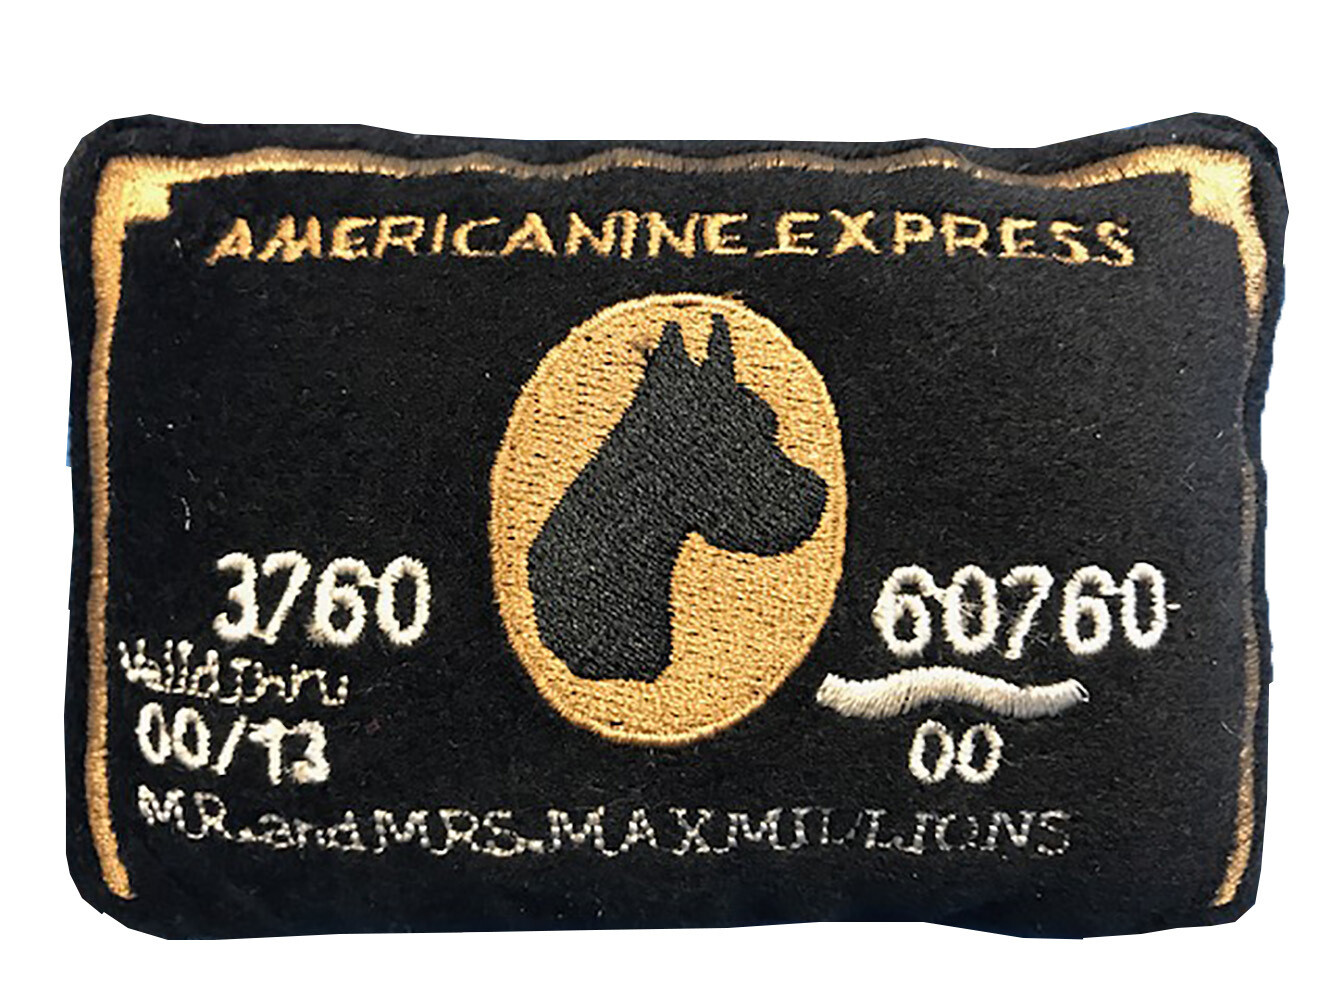 Black Americanine Express Card